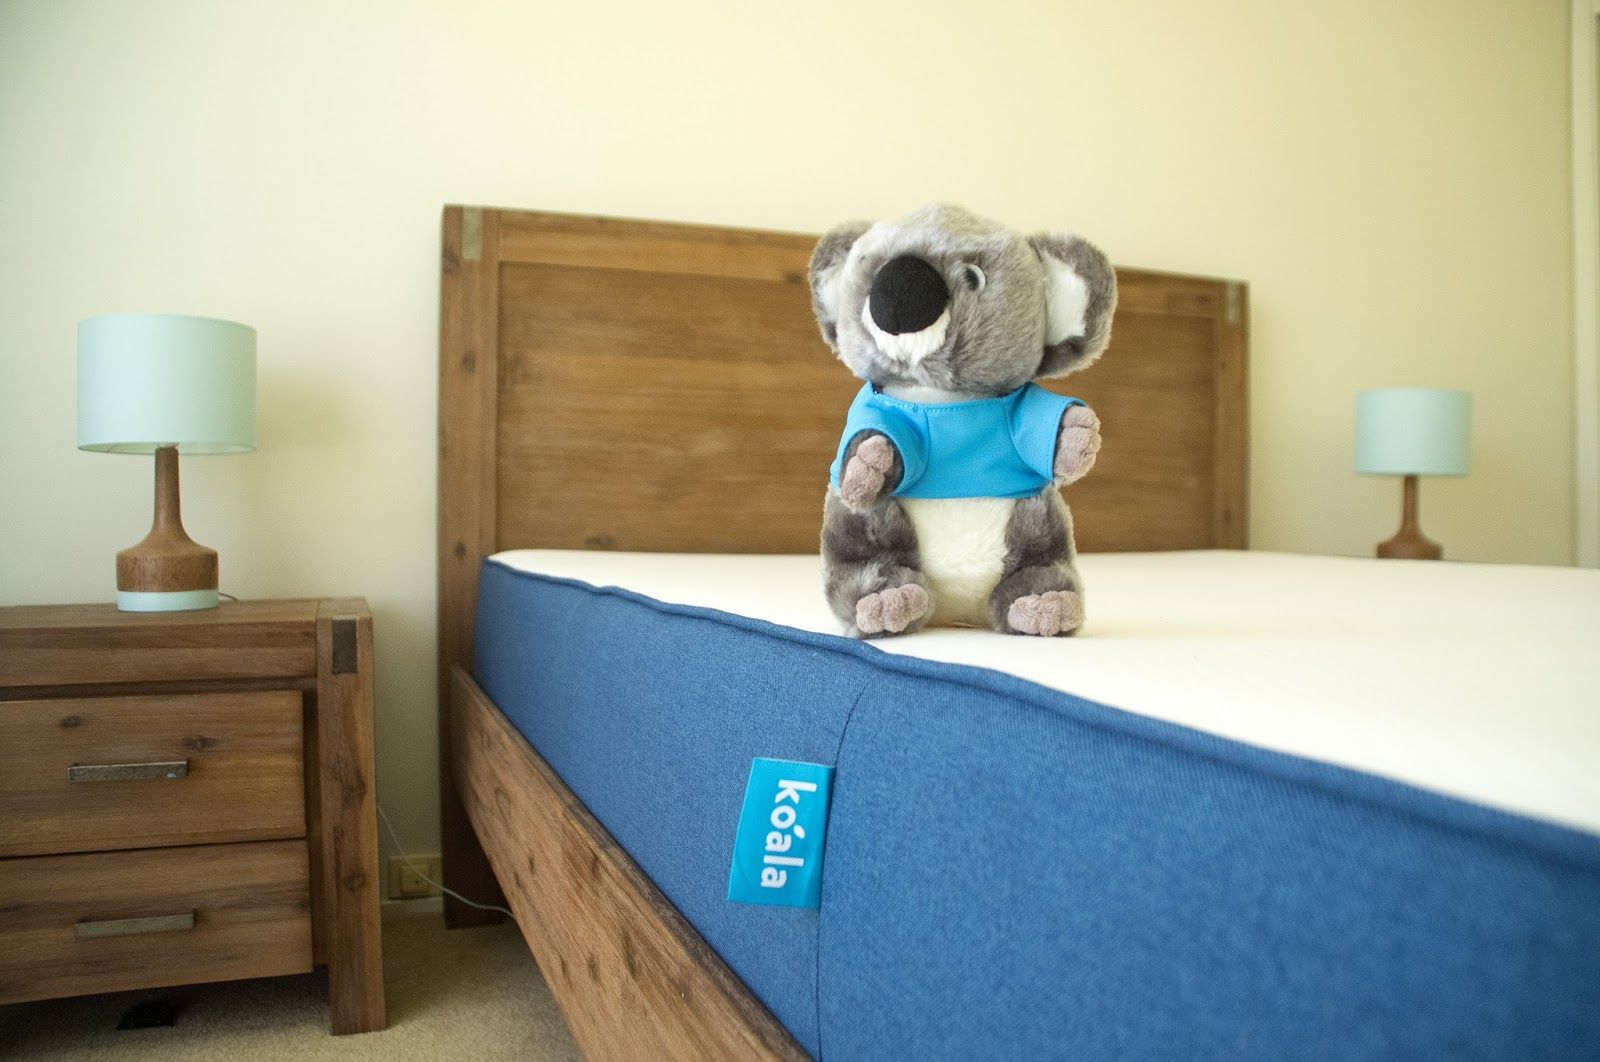 our ecosa vs koala mattress comparison guide ecosavskoala